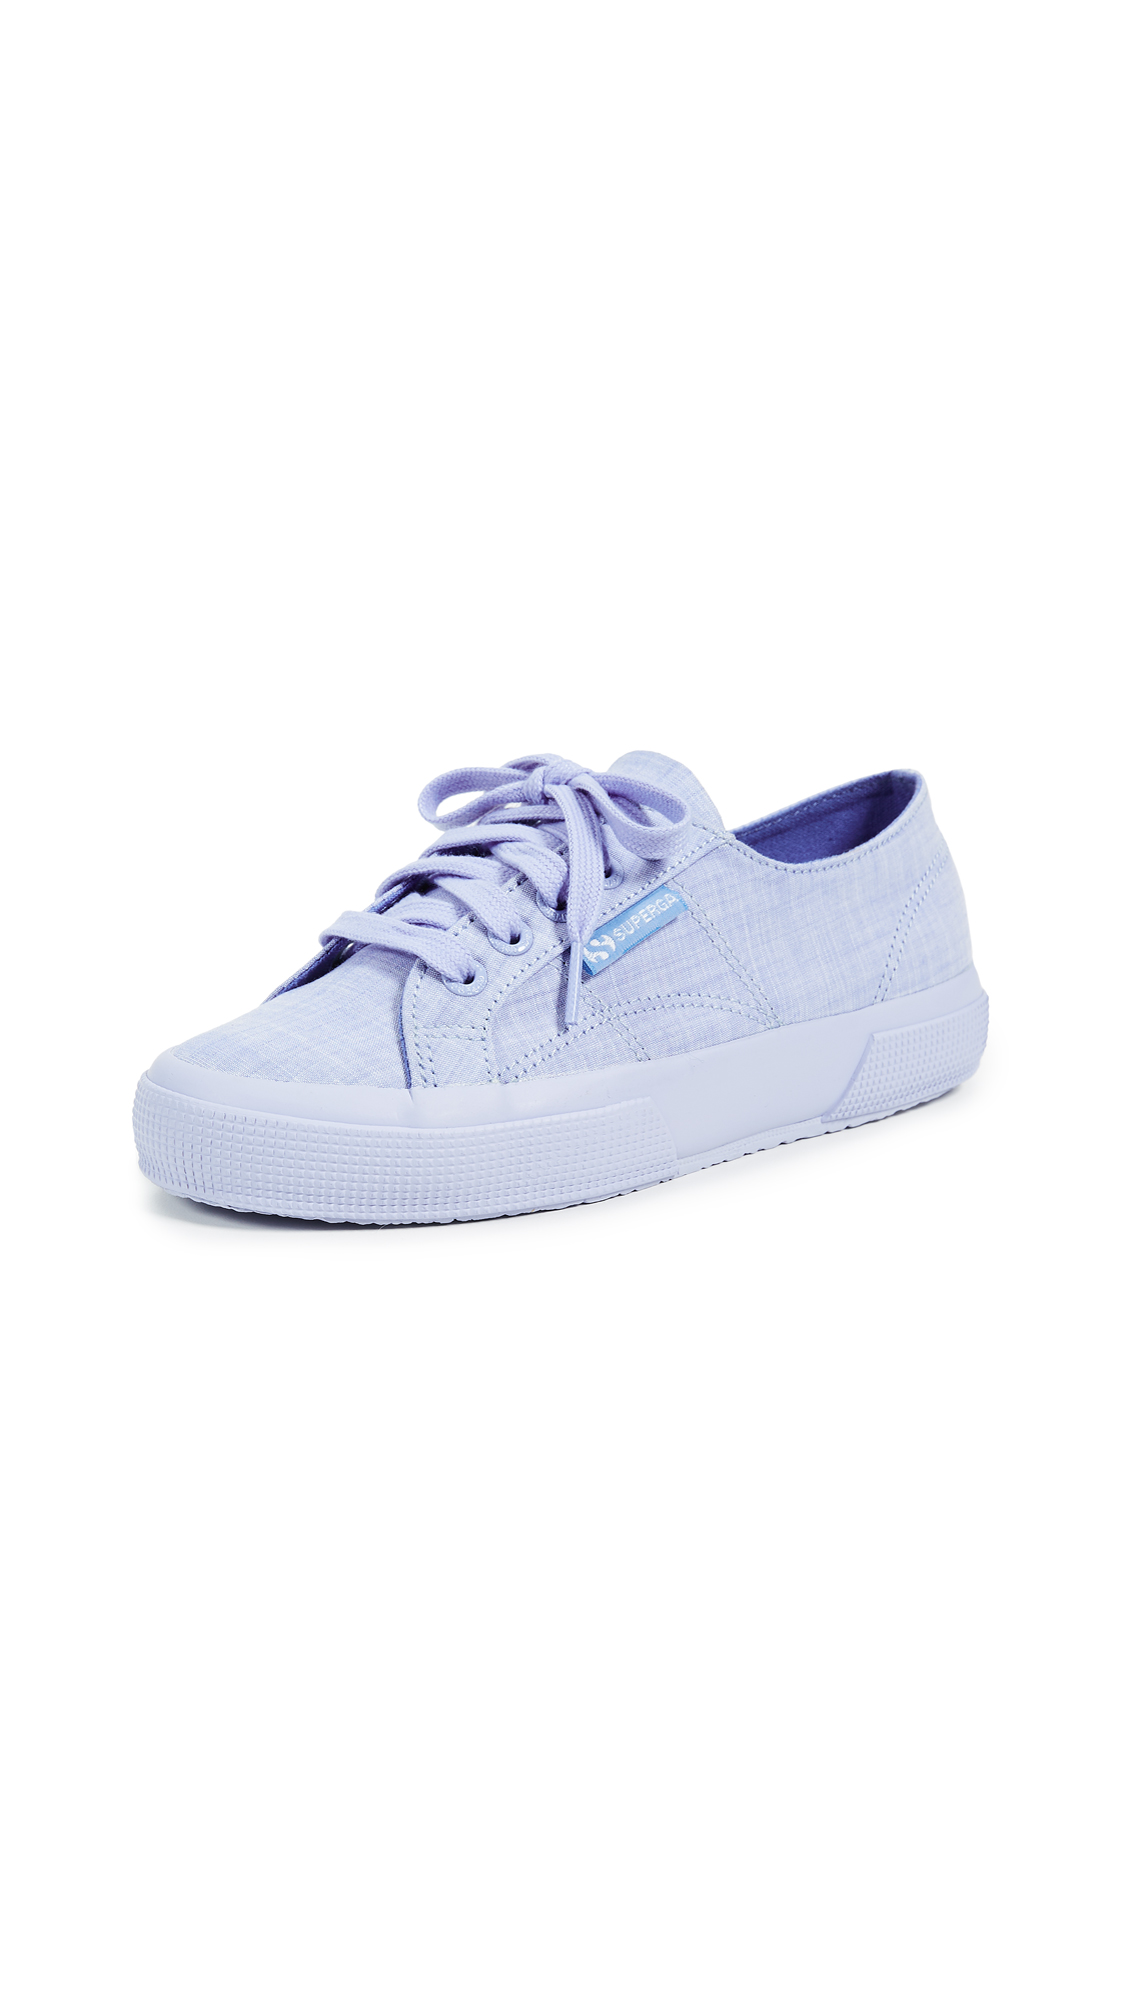 Superga 2750 Cotton Melangu Sneakers - Blue